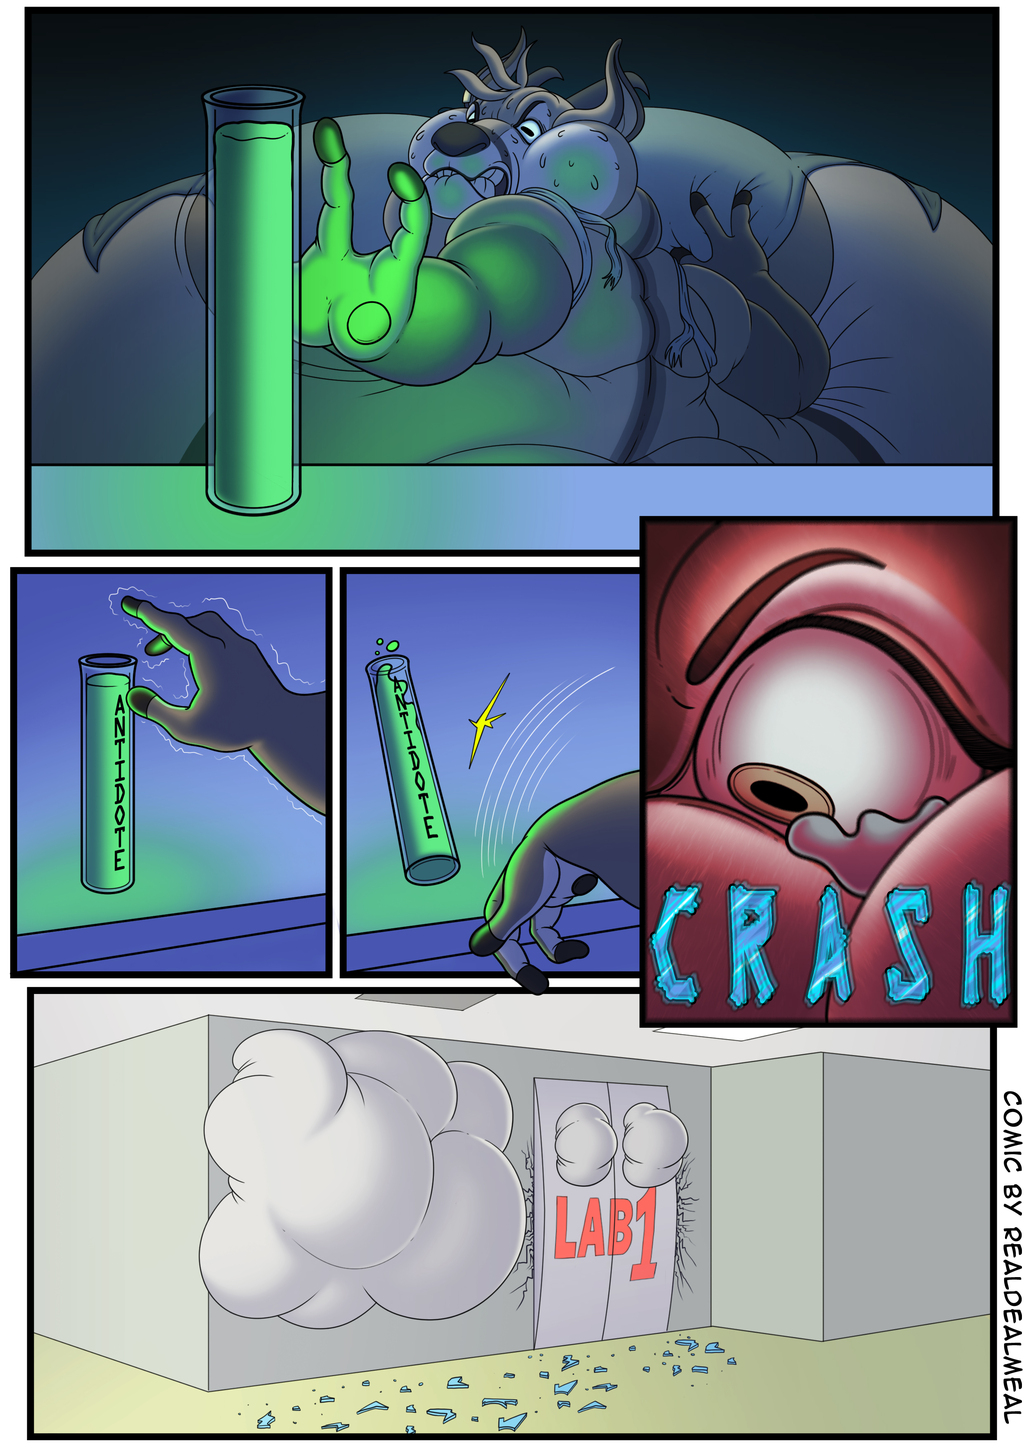 Most recent image: Short-terms side effects - P6